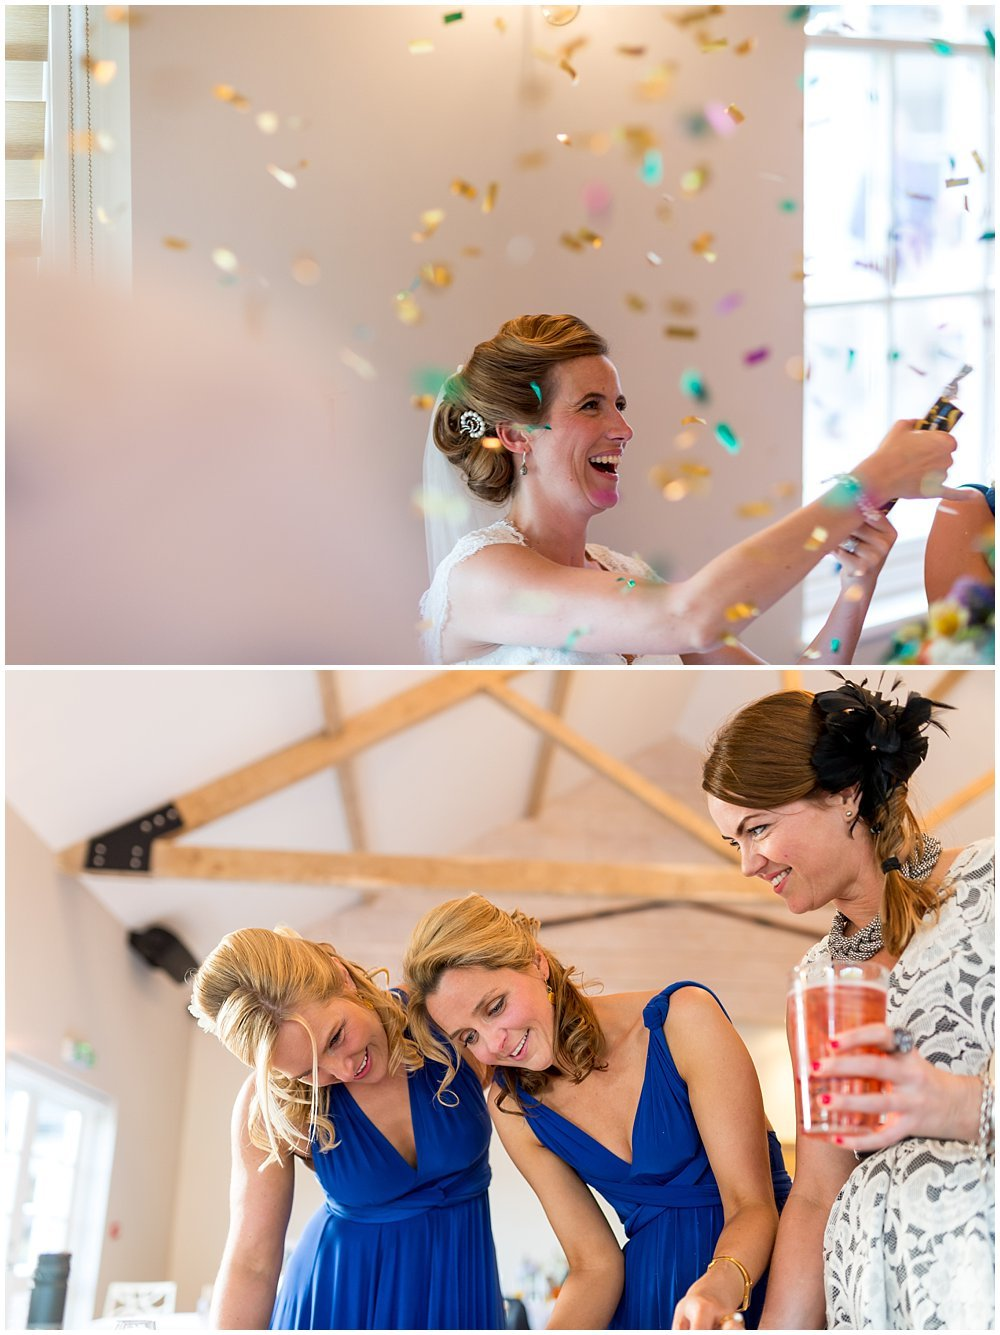 AMY AND DUNCAN NORWICH CATHEDRAL AND THE BOATHOUSE WEDDING - NORWICH AND NORFOLK WEDDING PHOTOGRAPHER 56